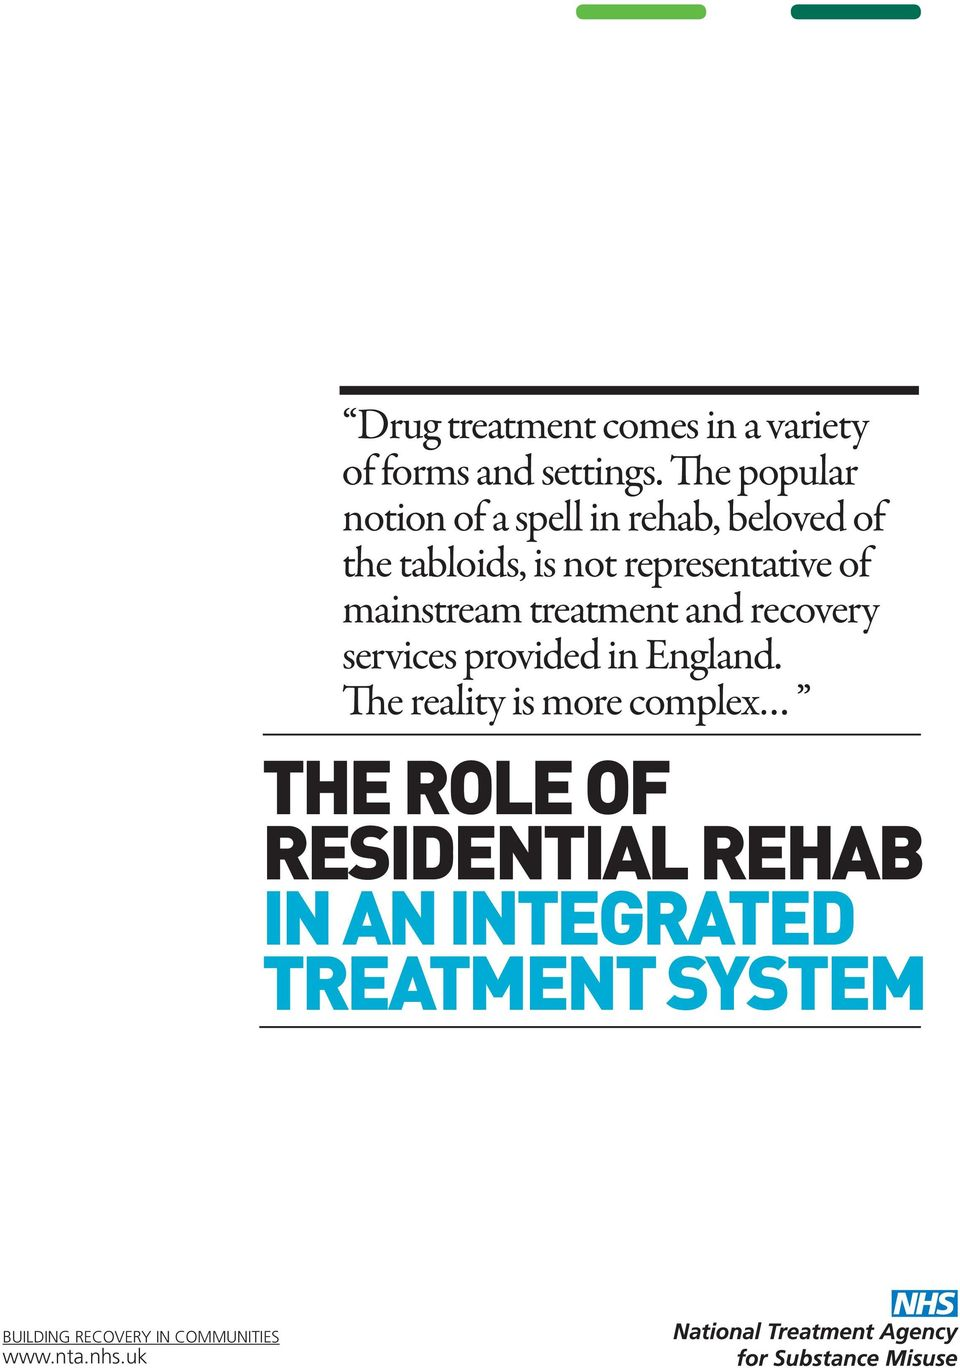 of mainstream treatment and recovery services provided in England.